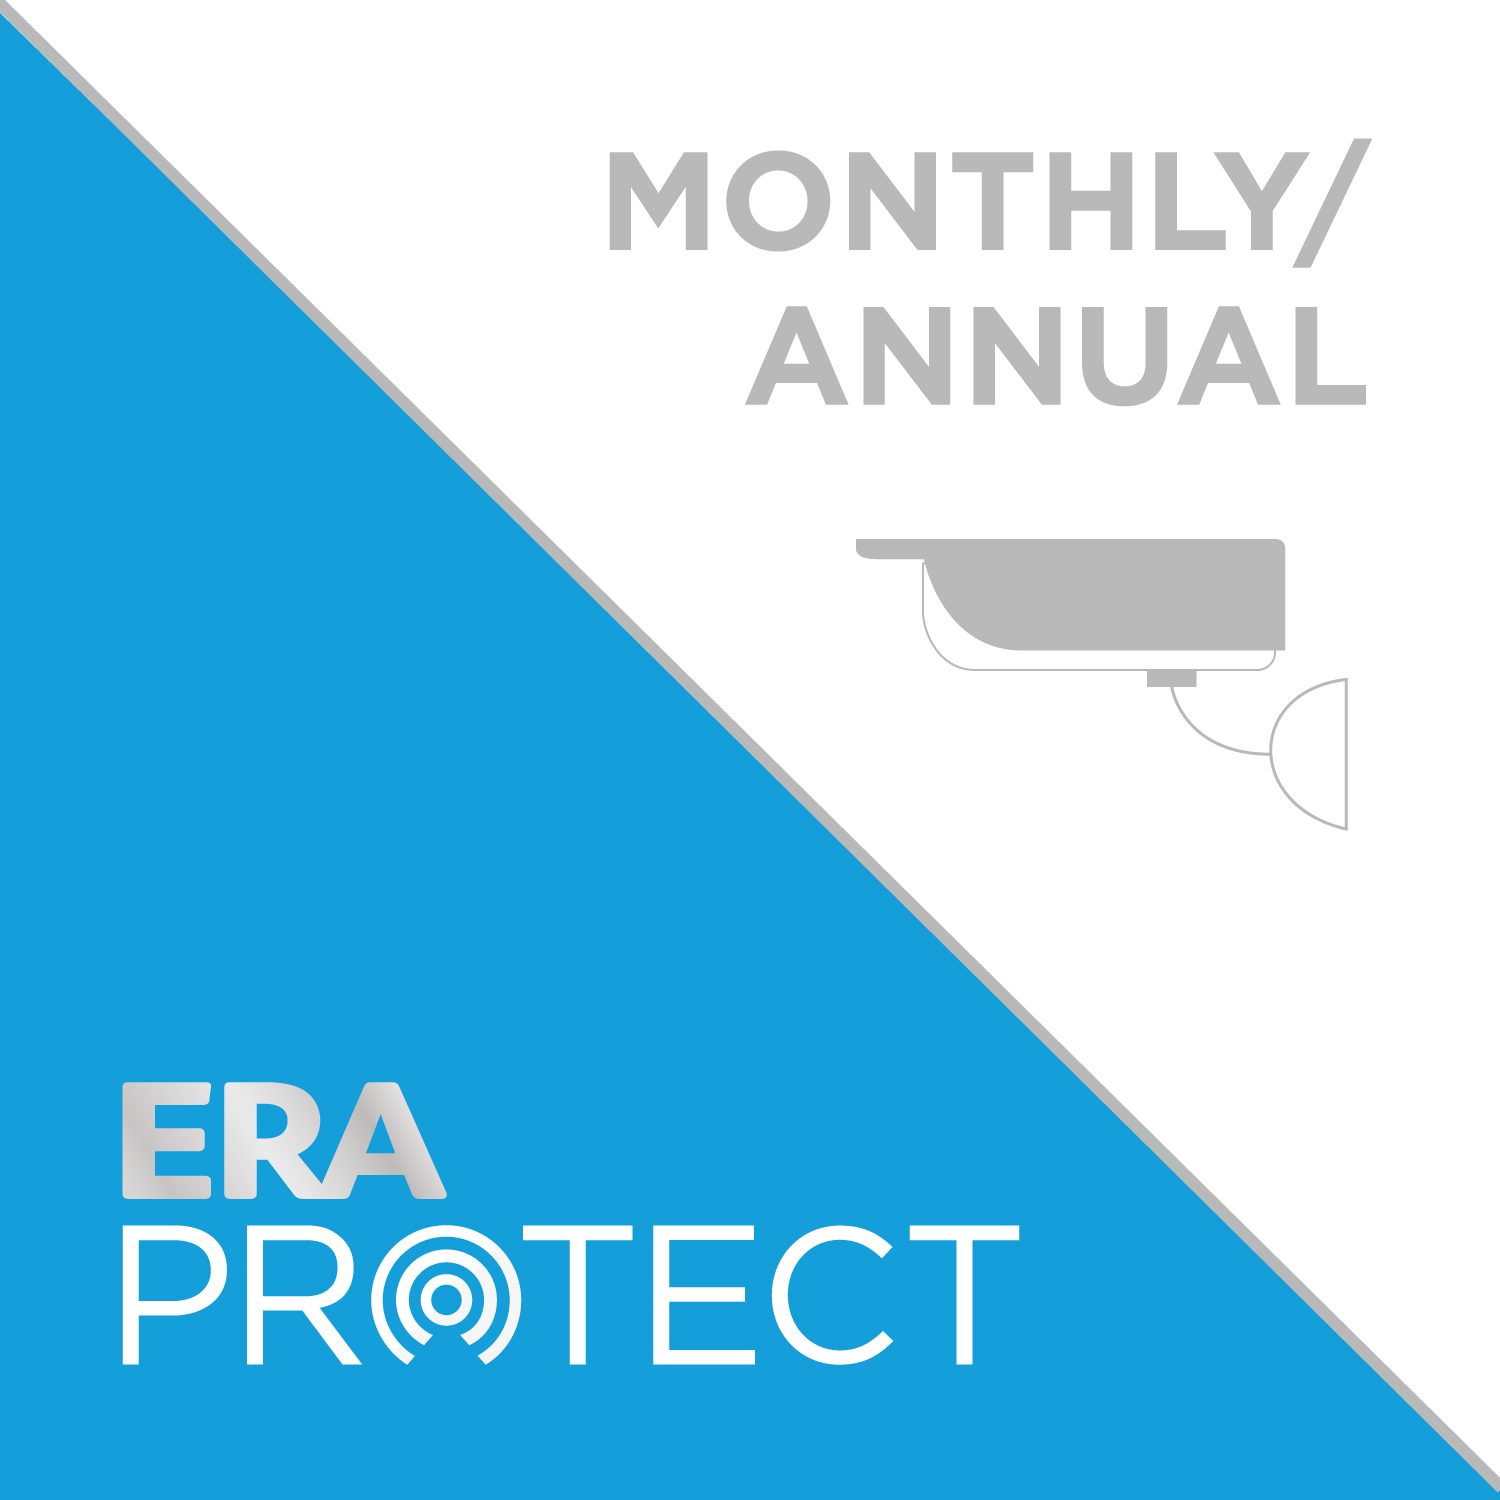 ERA Protect Subscriptions